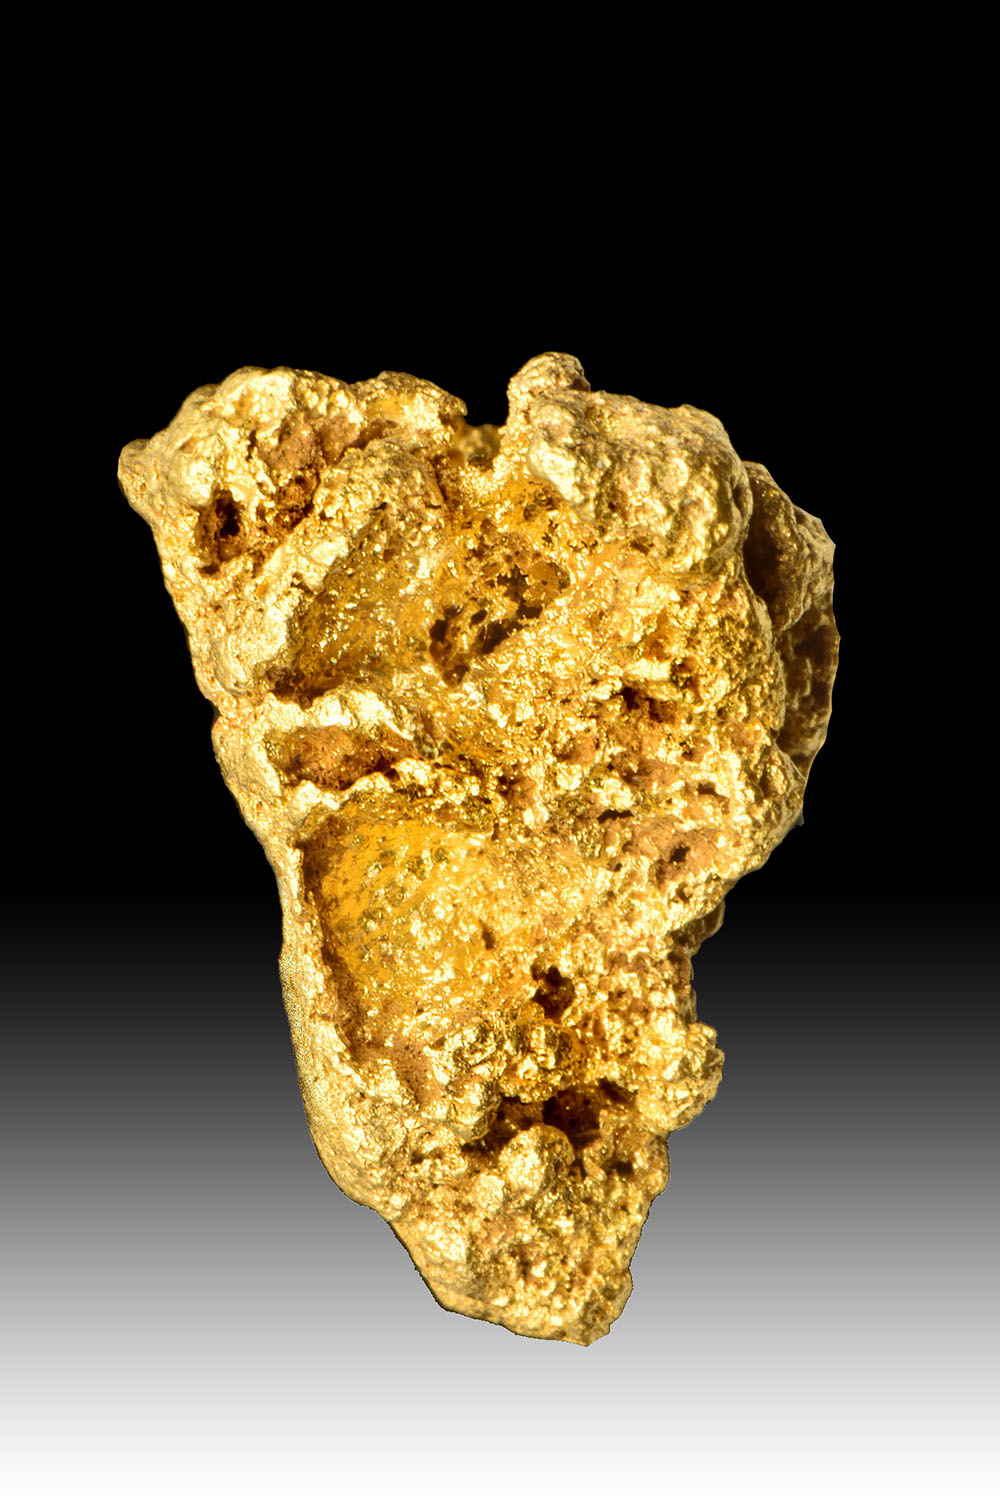 Native Australian - Triangular Shaped Gold Nugget